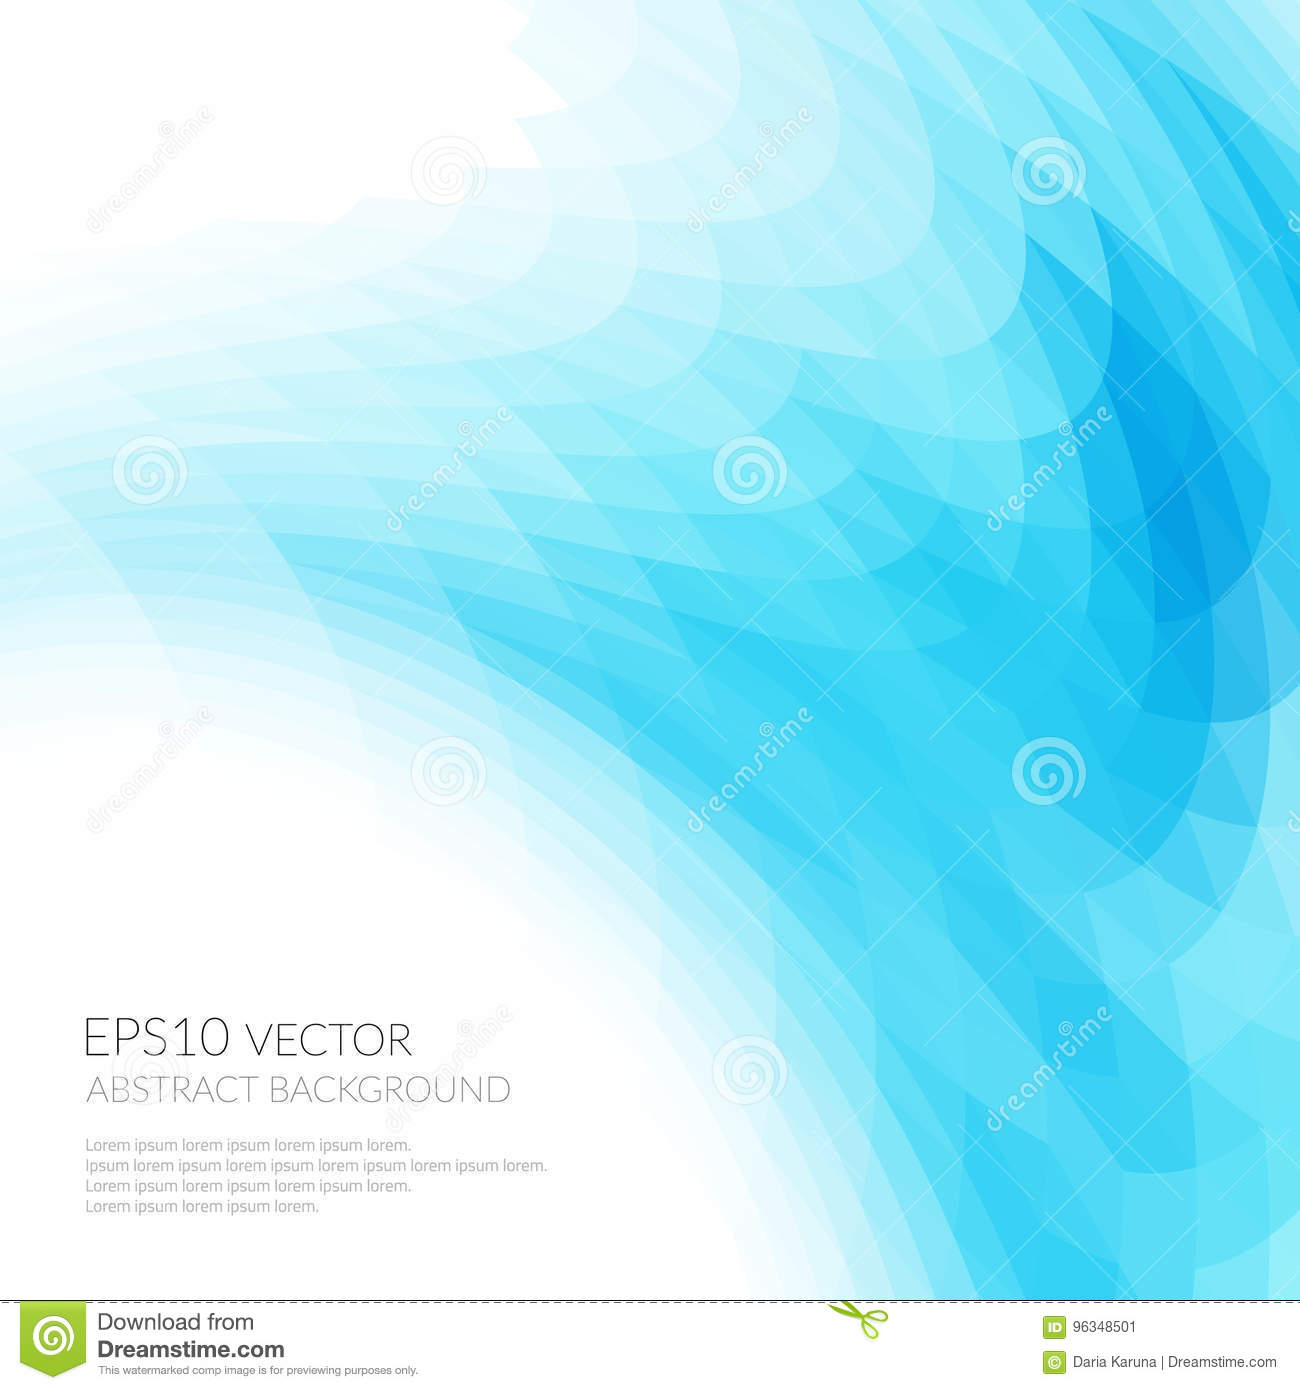 Abstract Background With Bright Blue Wavy Shapes The Smooth